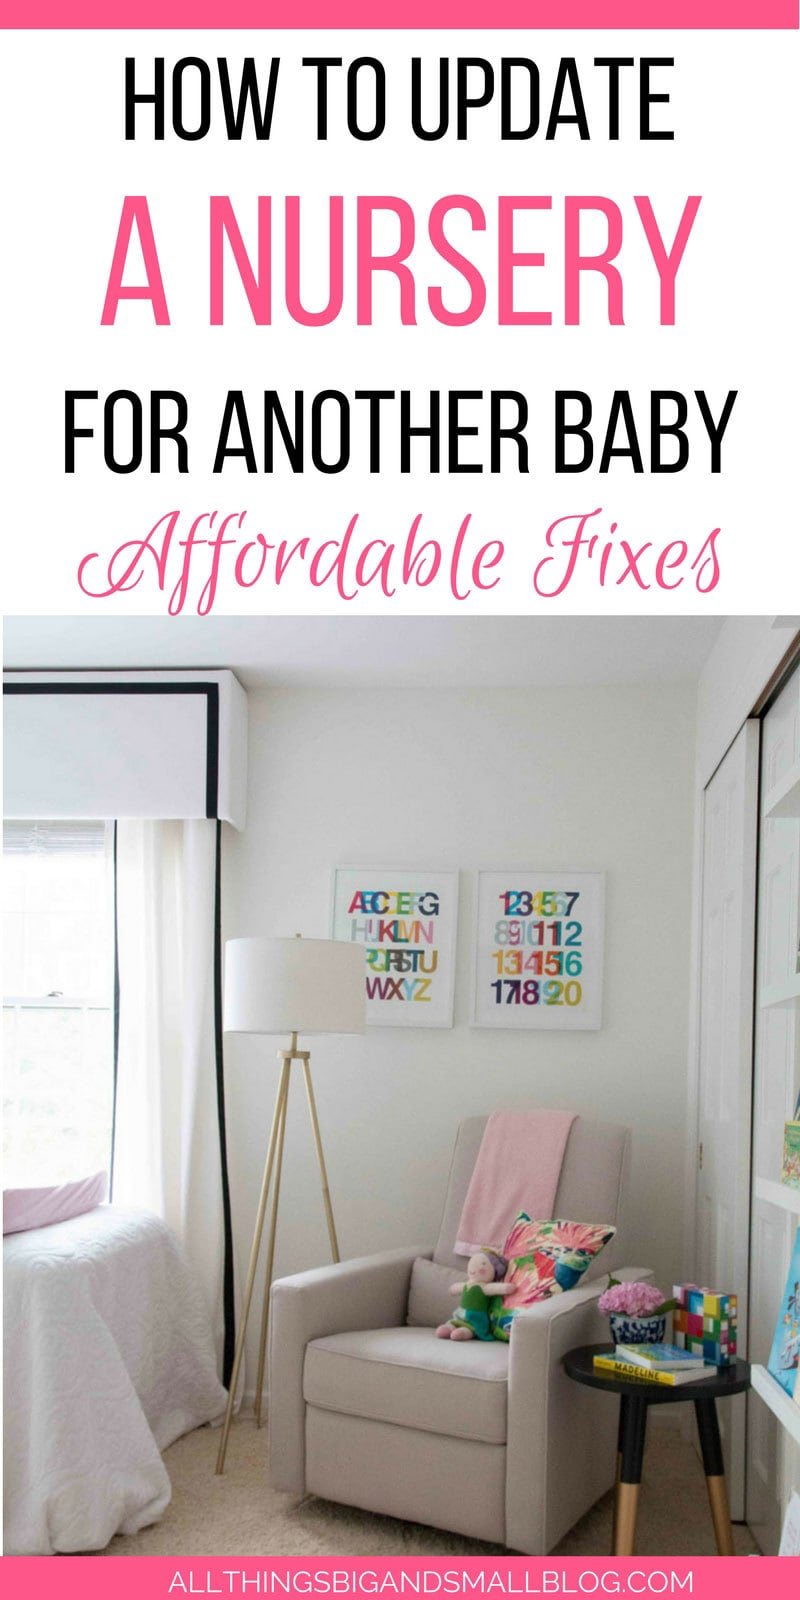 easy updates to make for your nursery and nursery furniture that's actually affordable!